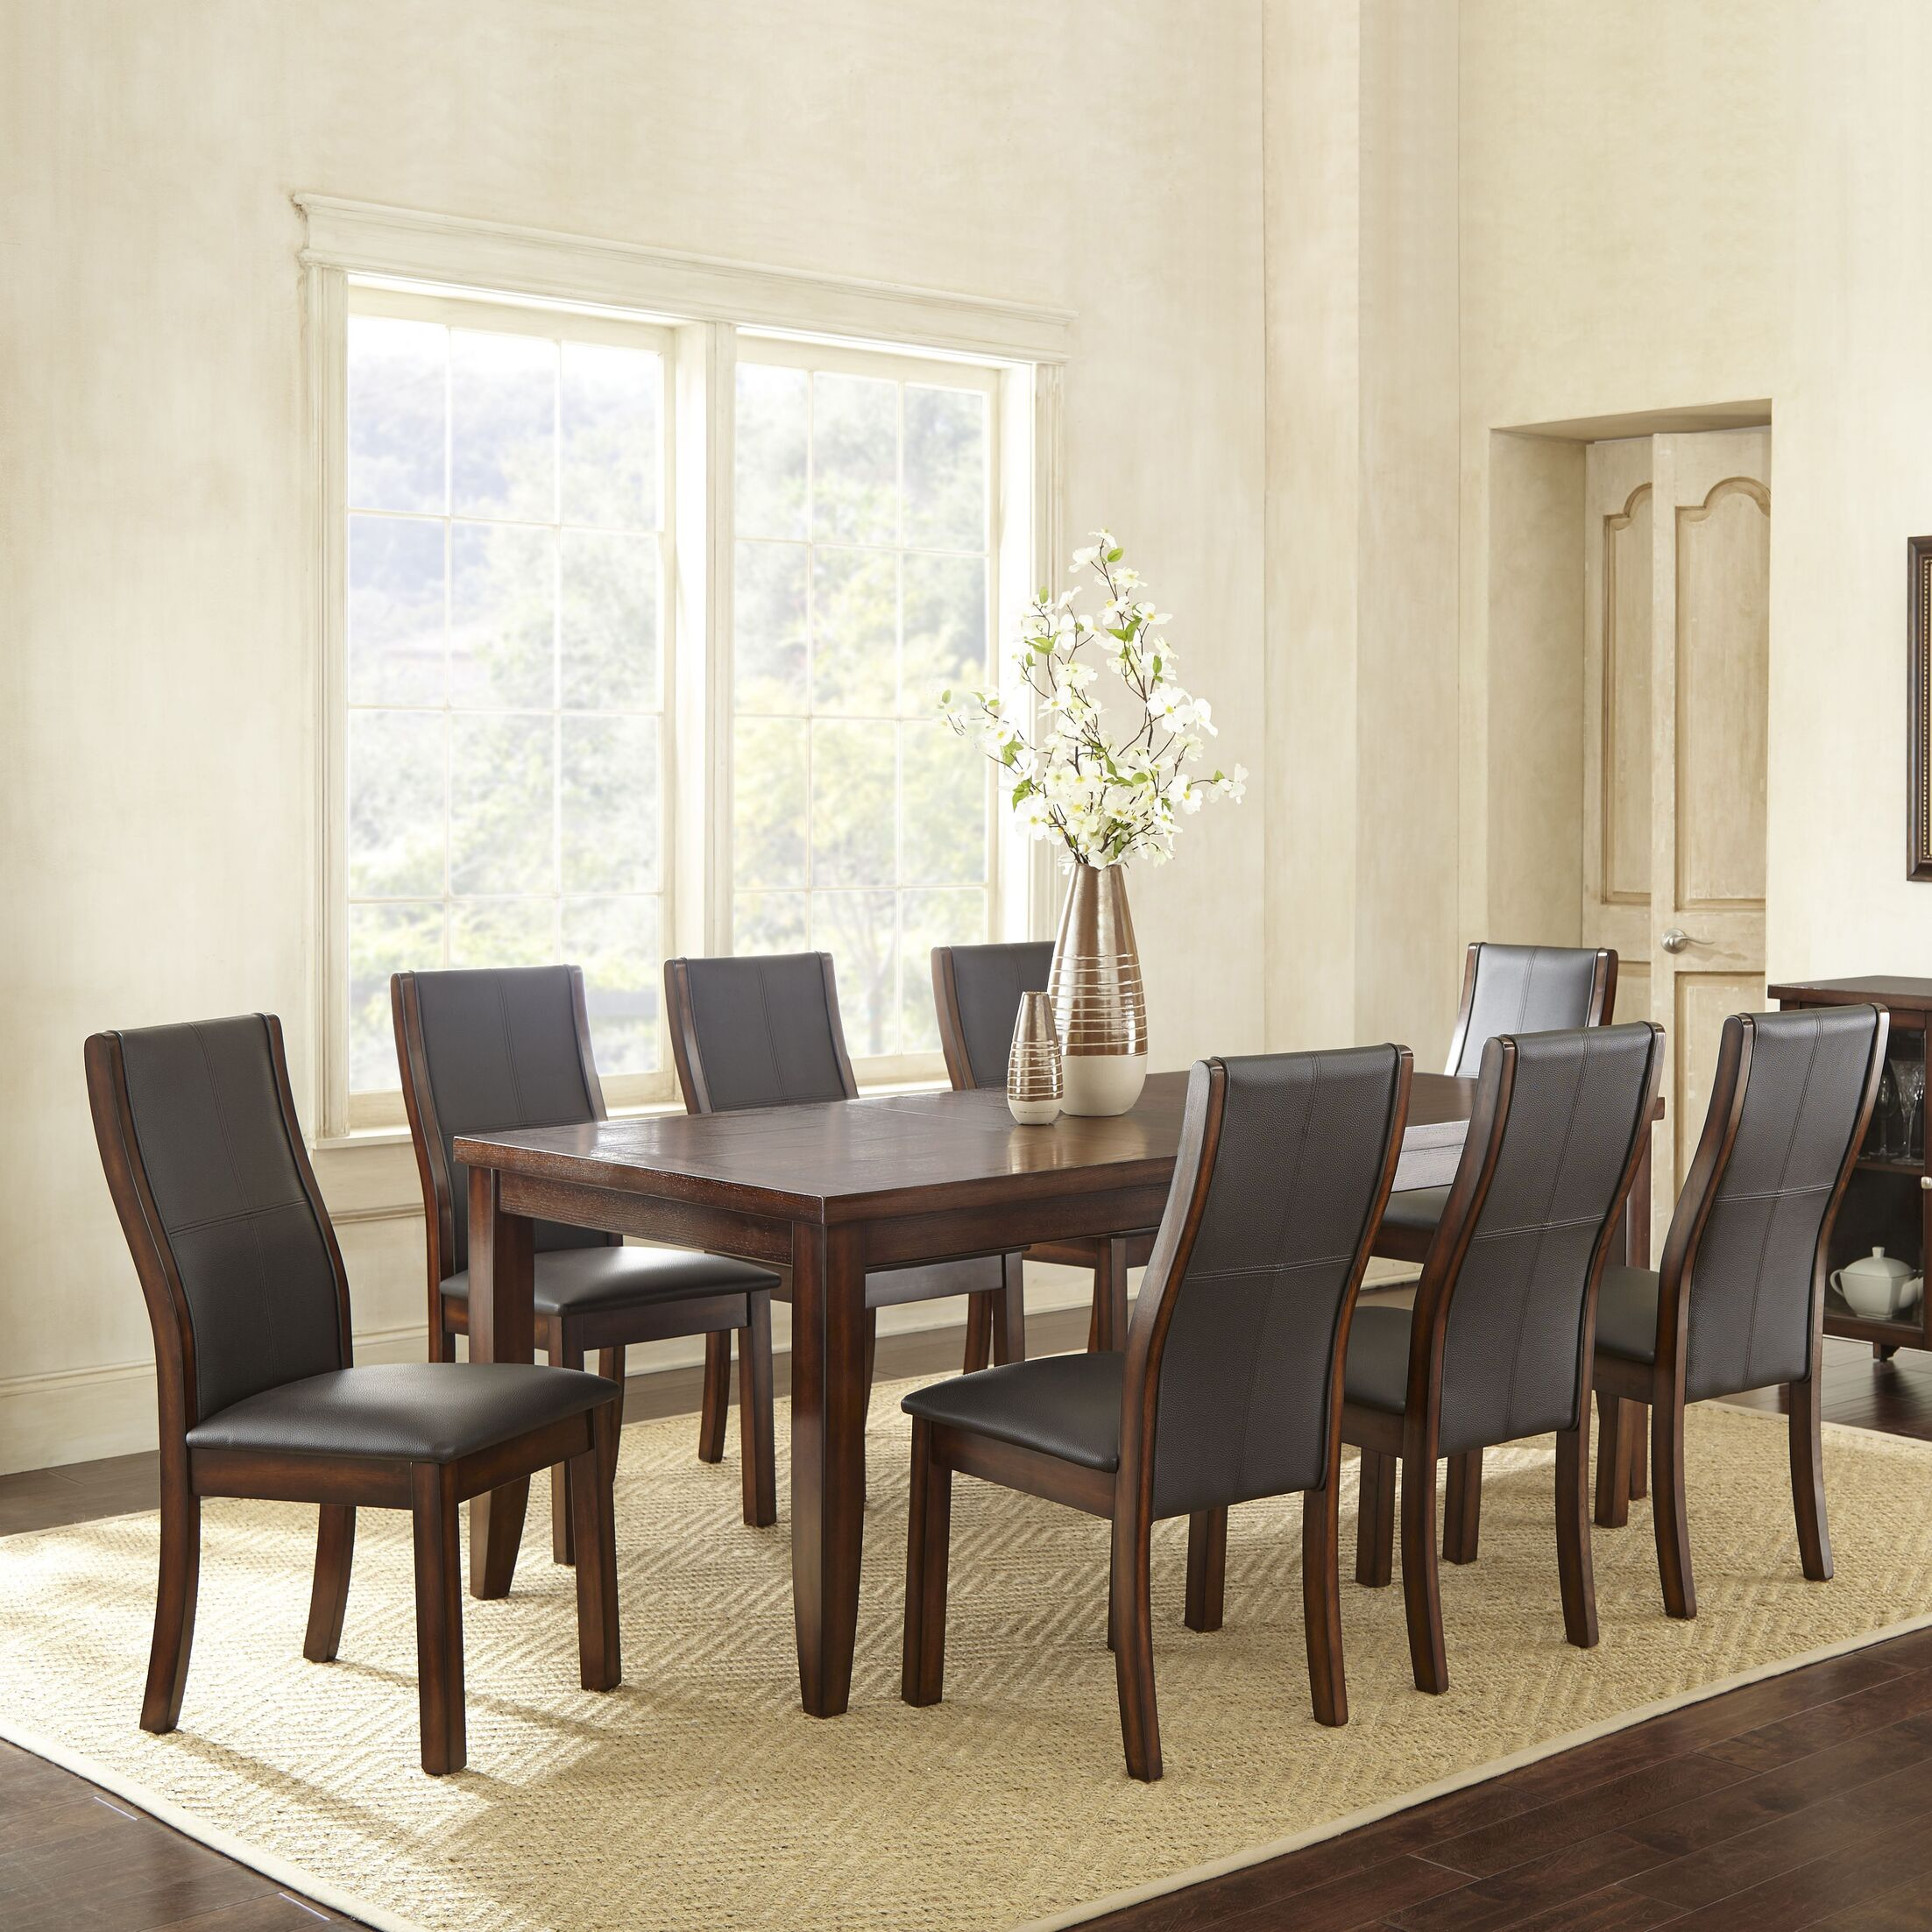 Dining Table Sets Abigale 9 Piece Extendable Dining Set